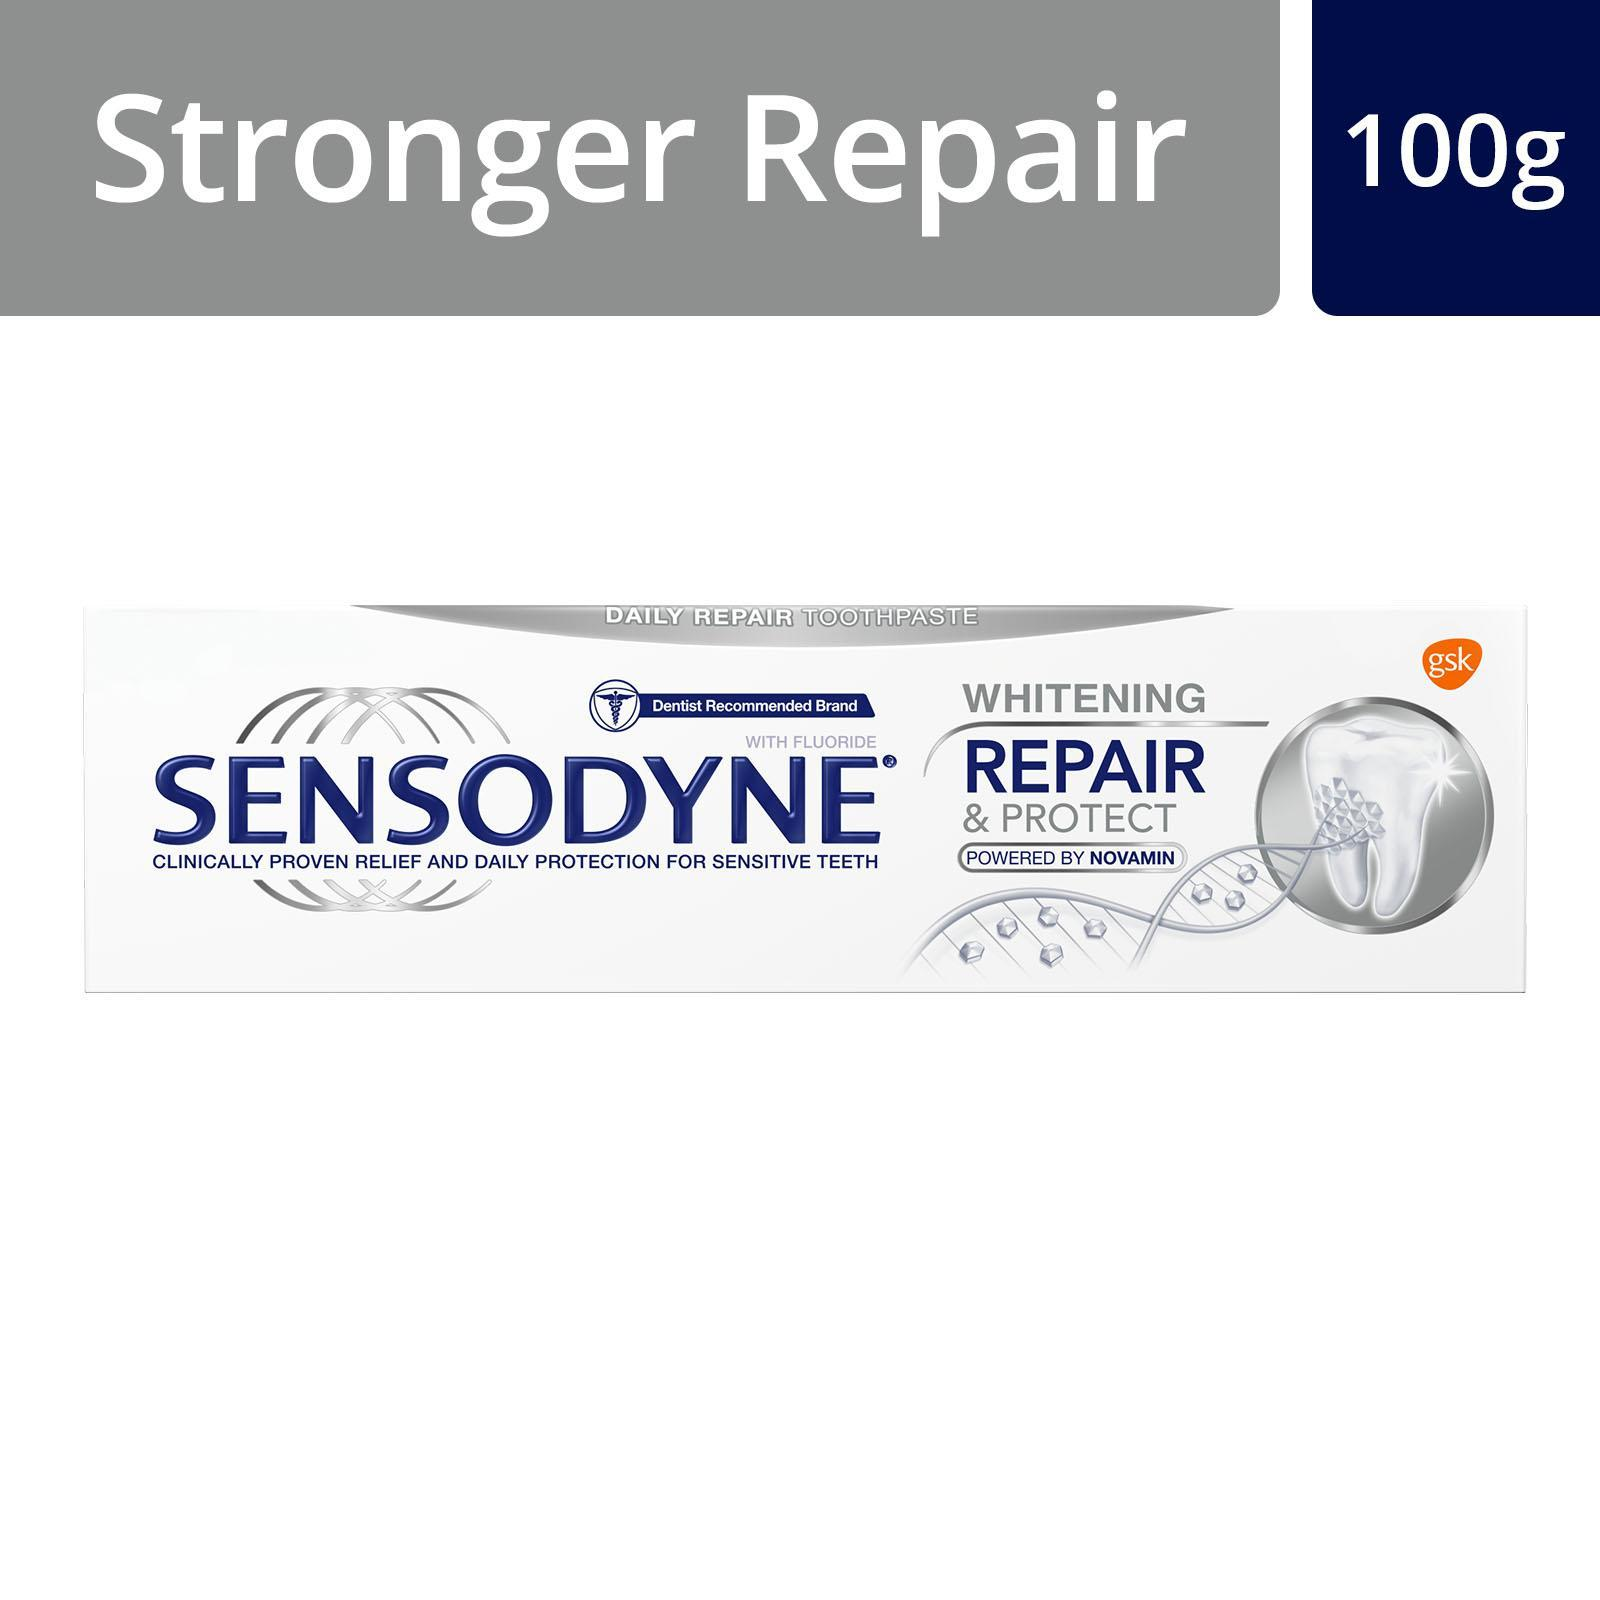 Sensodyne Sensitive Repair and Protect Whitening Toothpaste, 100 g